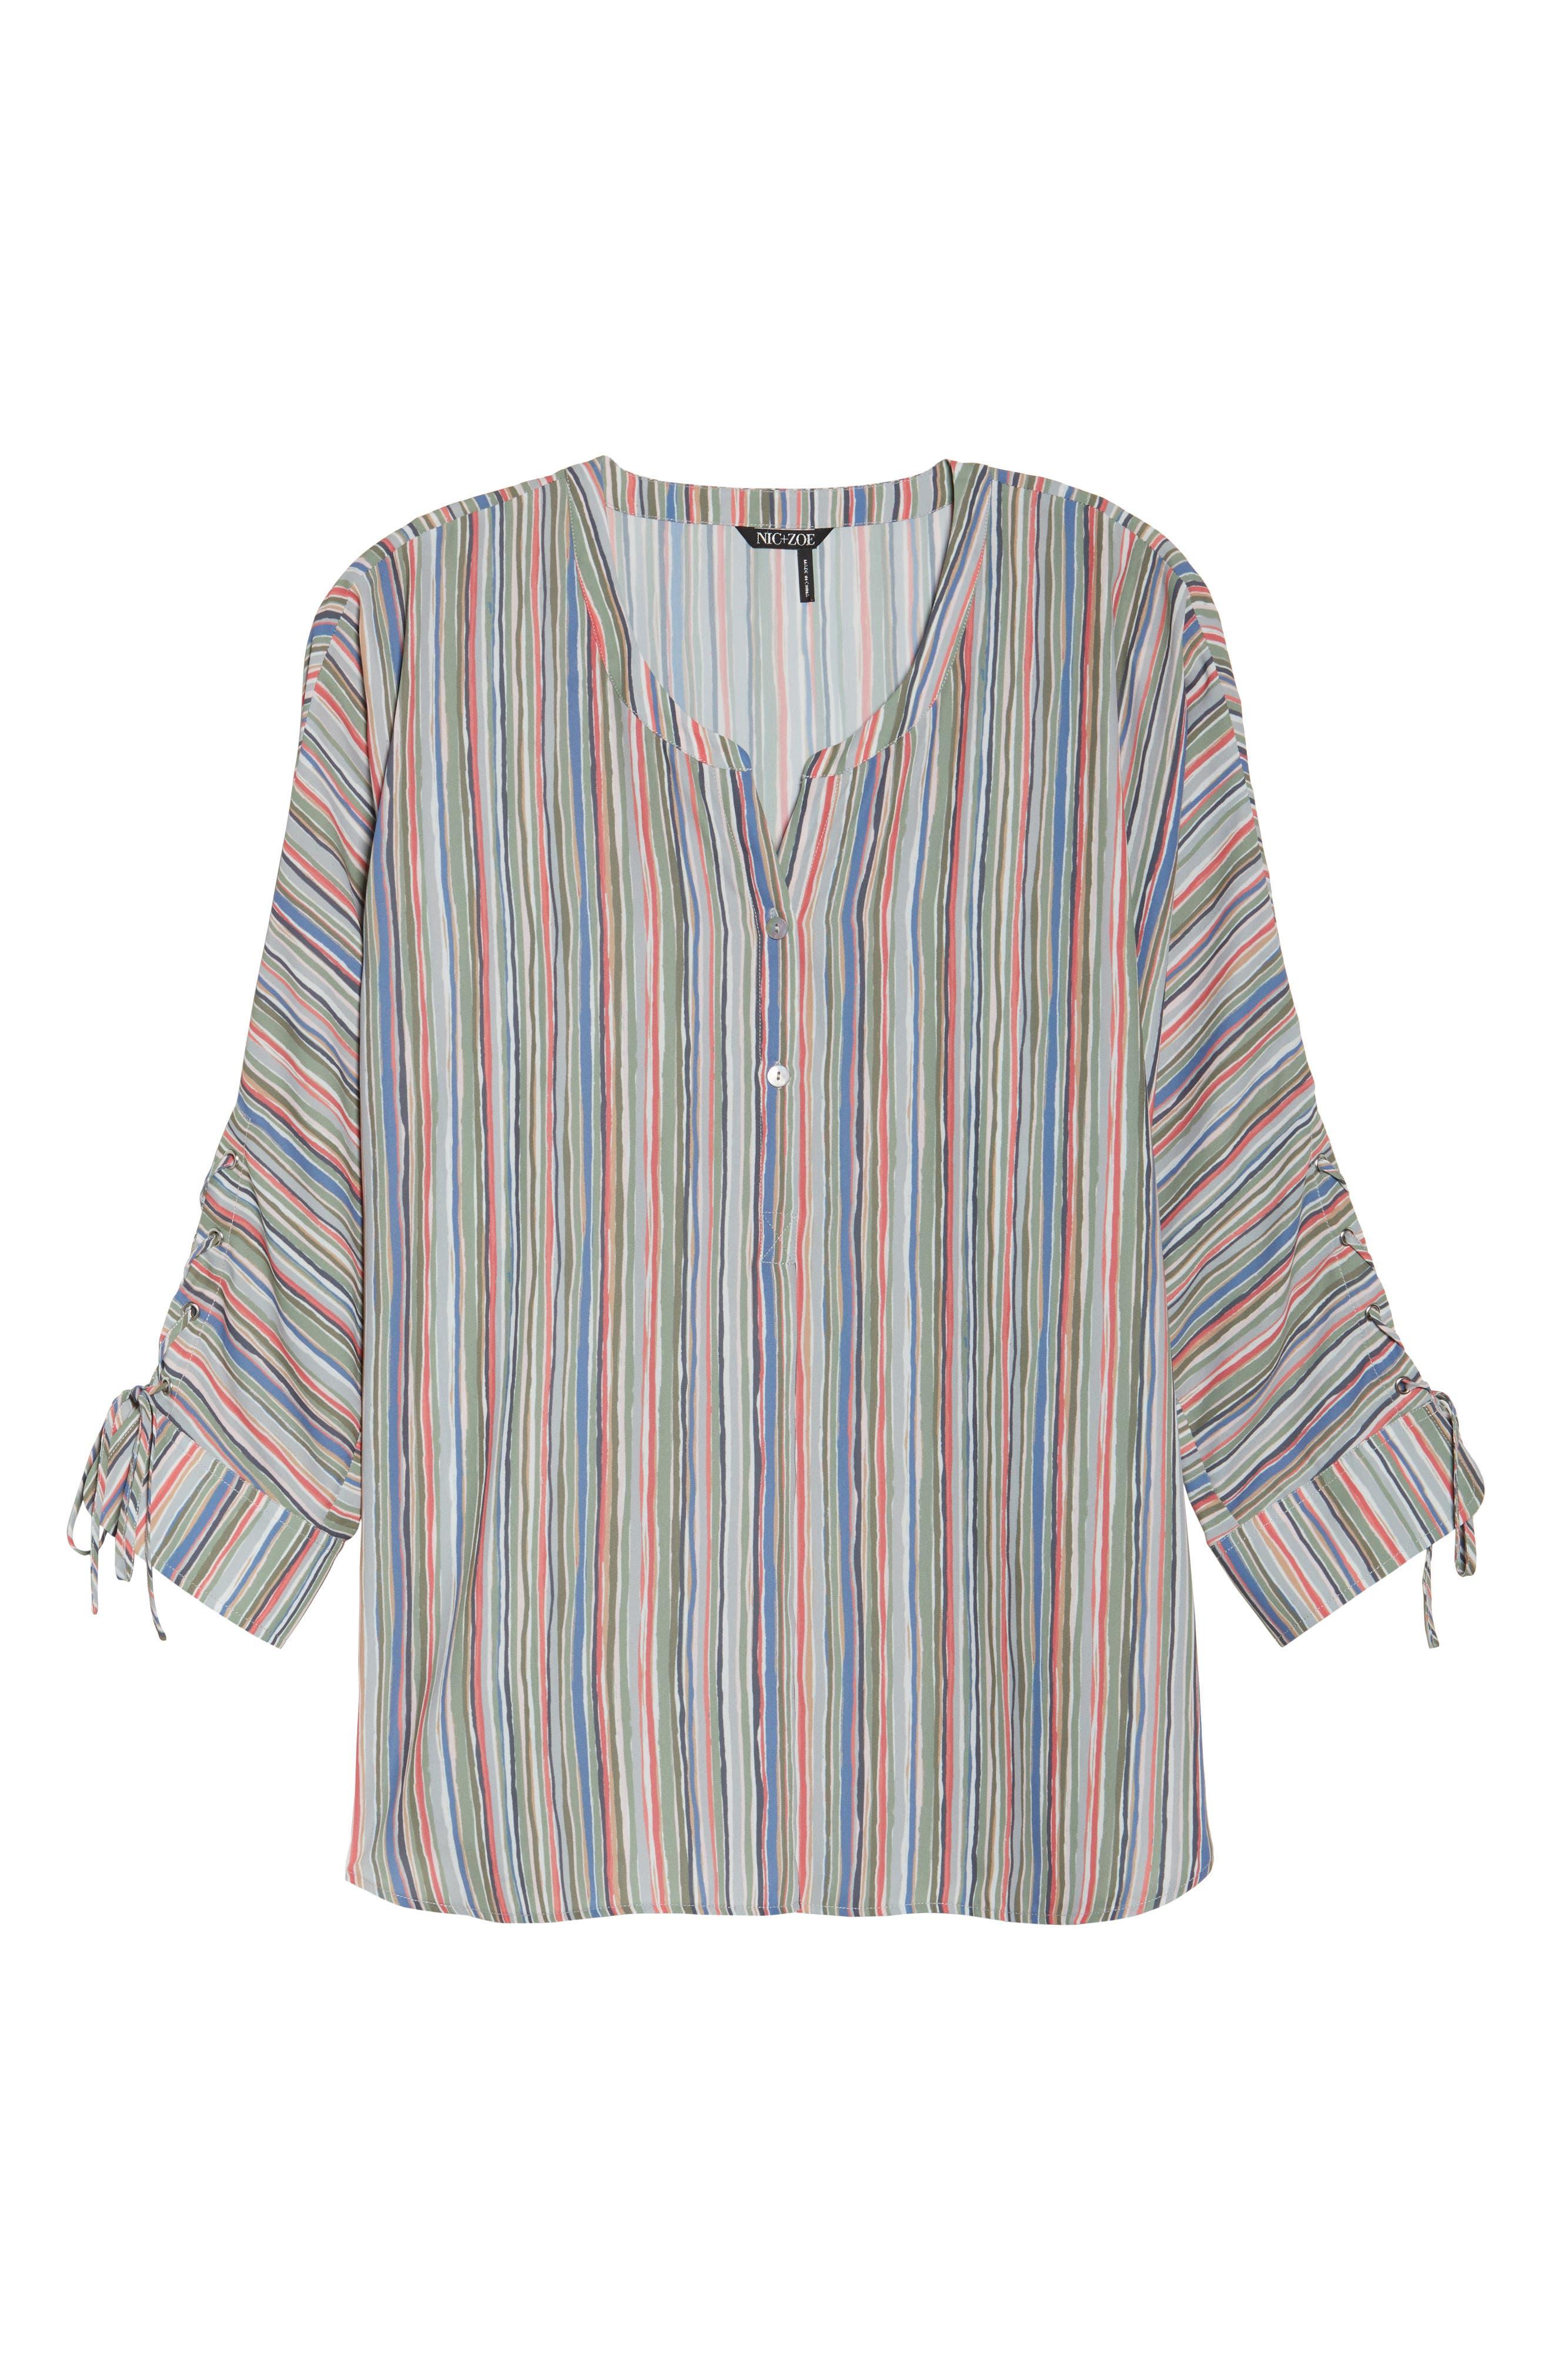 Cabana Tie Sleeve Top,                             Alternate thumbnail 6, color,                             609